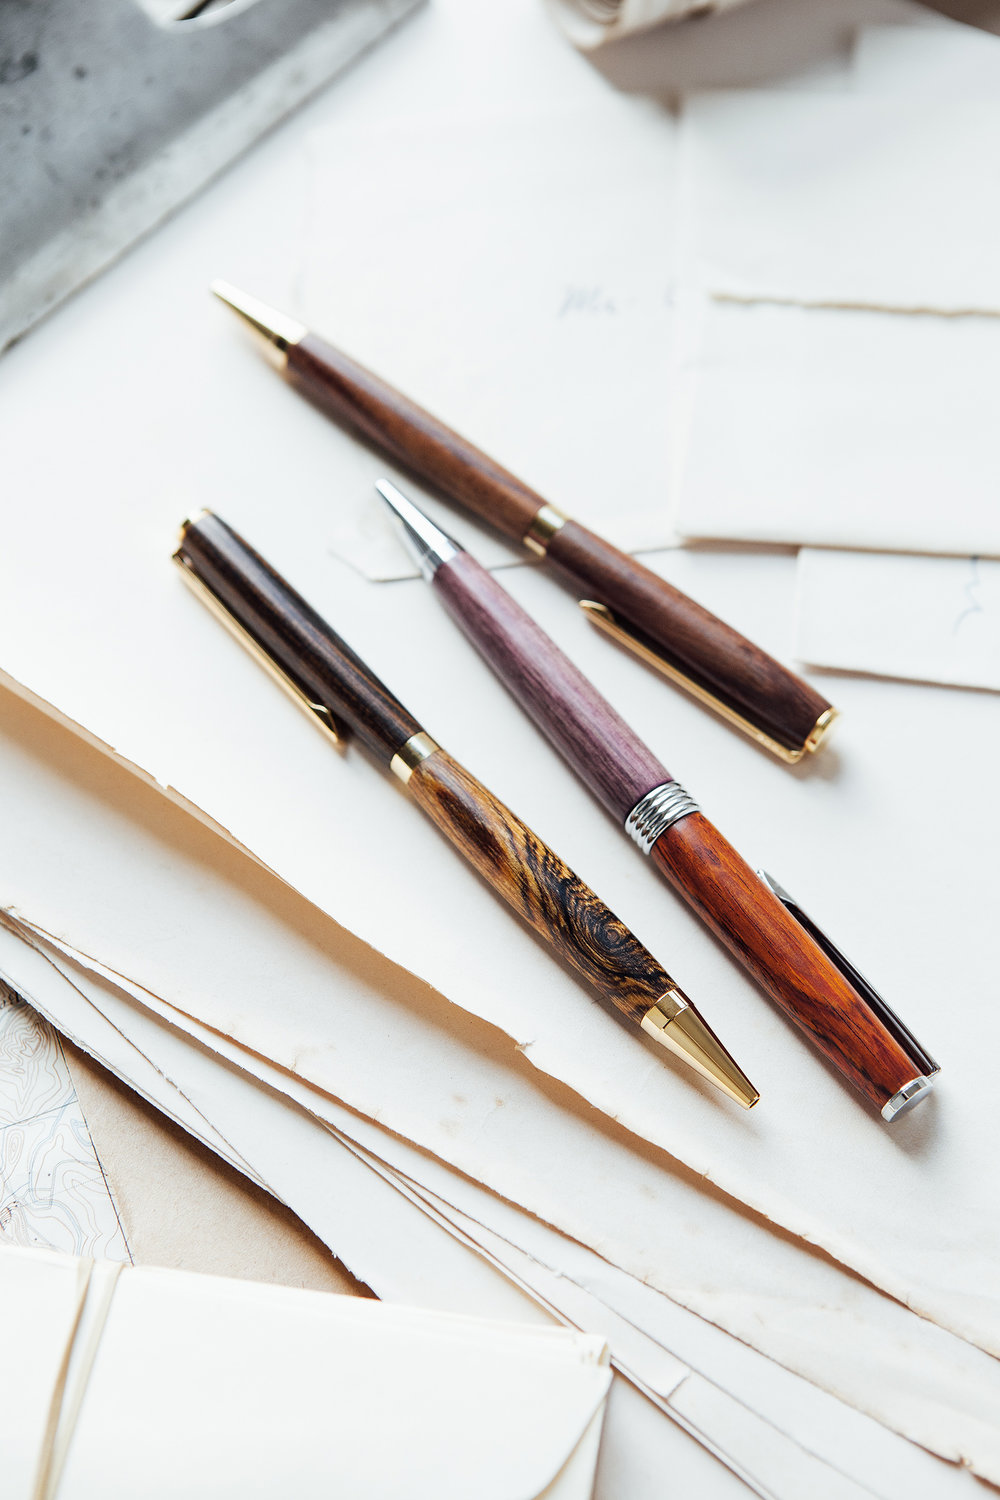 Tiff-wood-pen-etsy-unique-gift-handcraft-handmade-portland-fountain-pen-slims-group-2.jpg